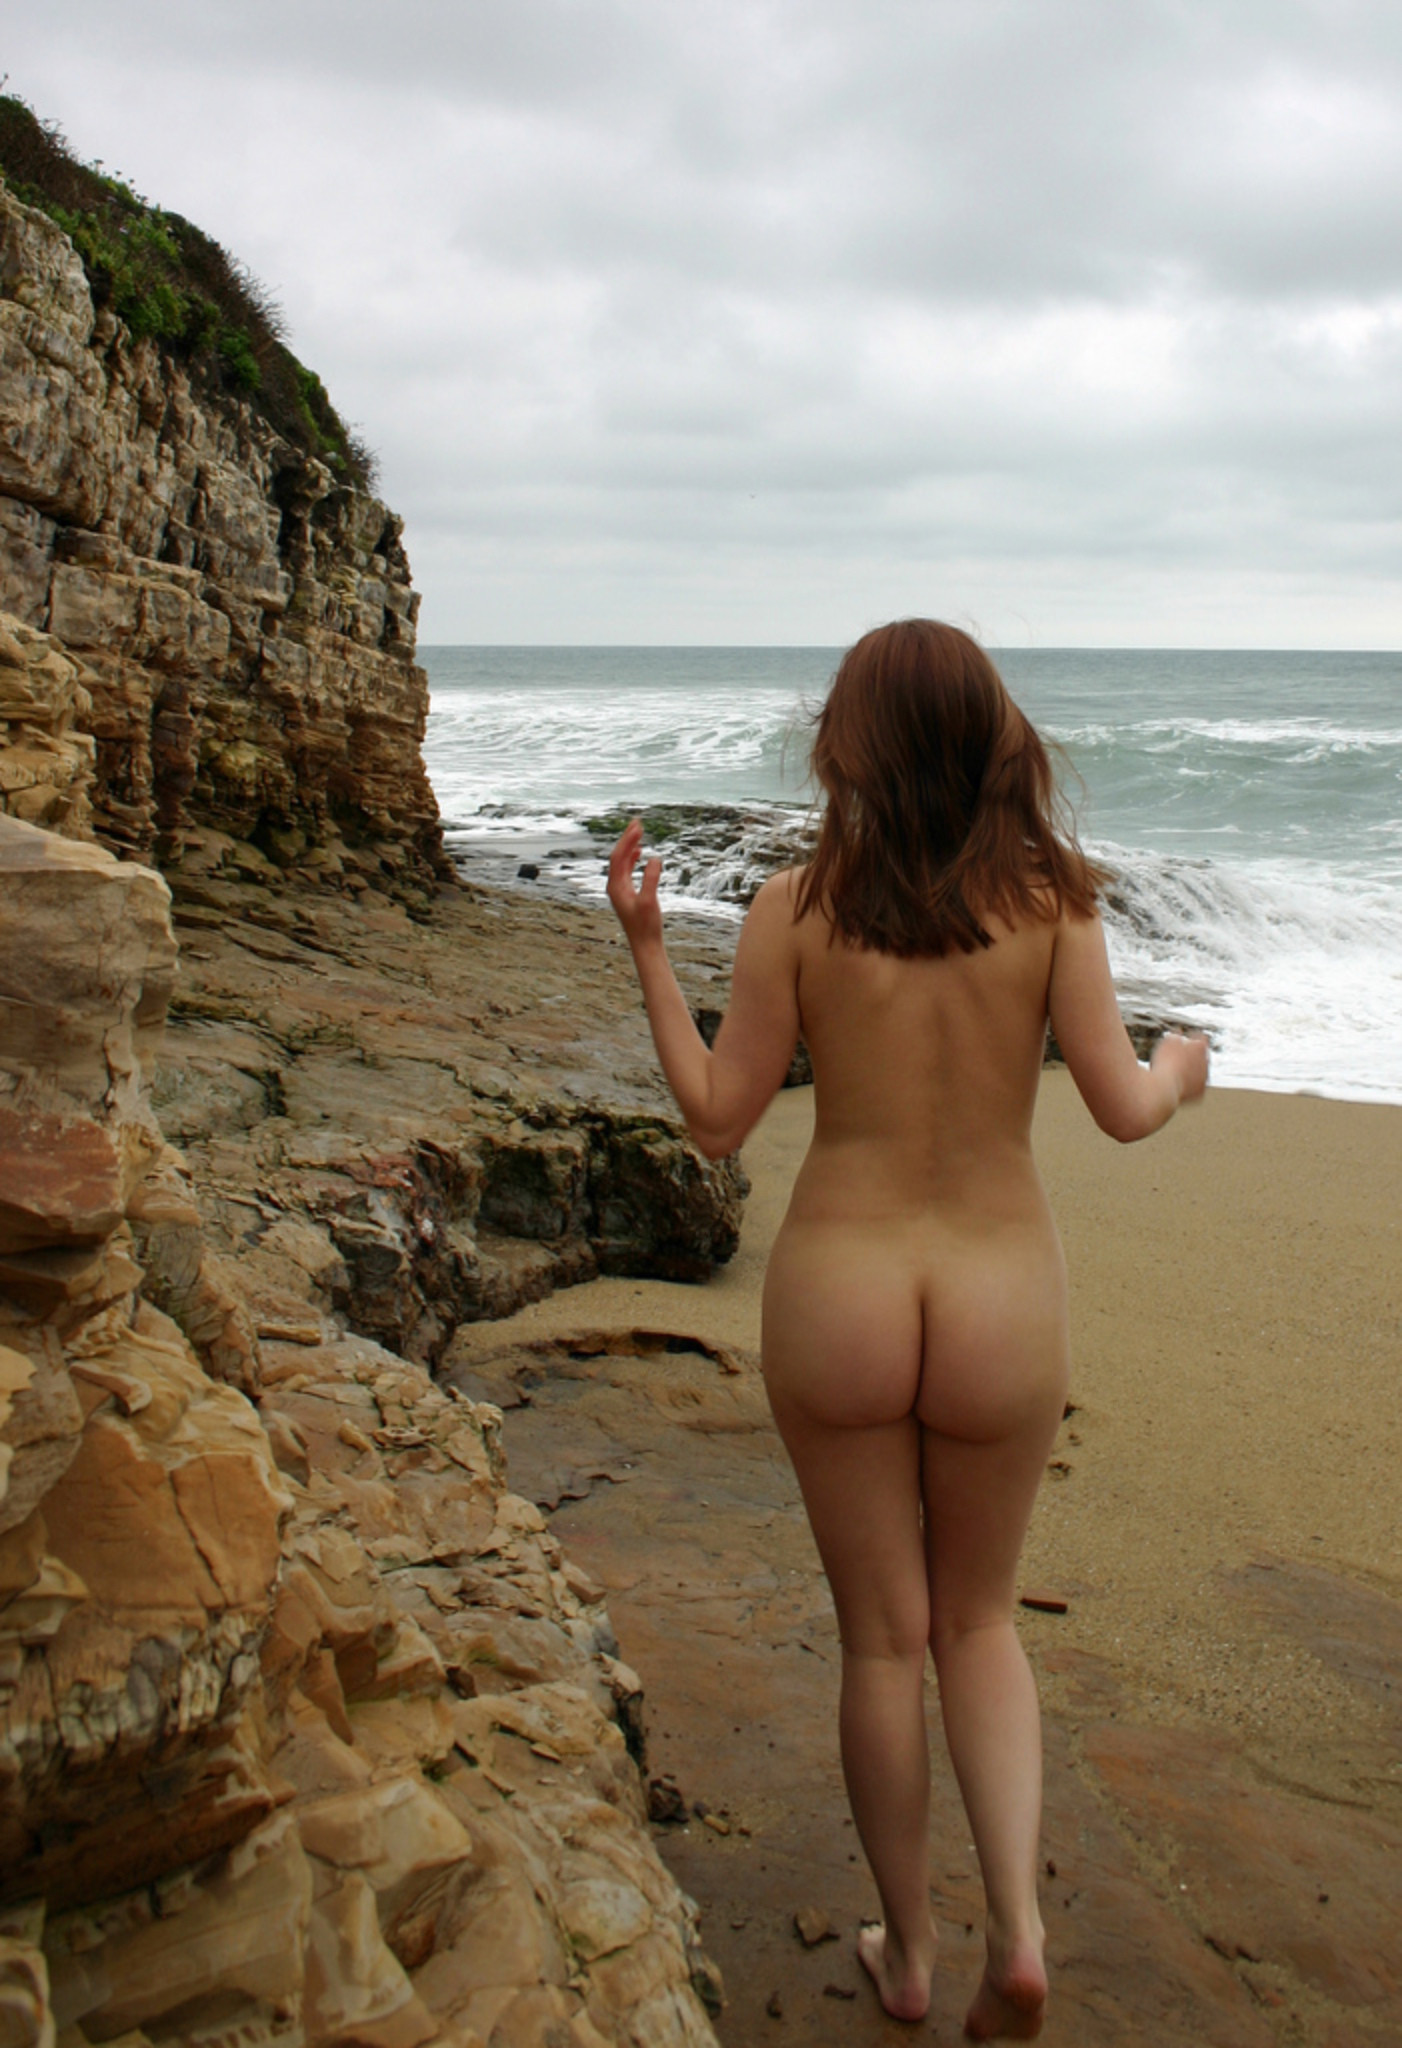 Walking naked on empty beach to feel the nature